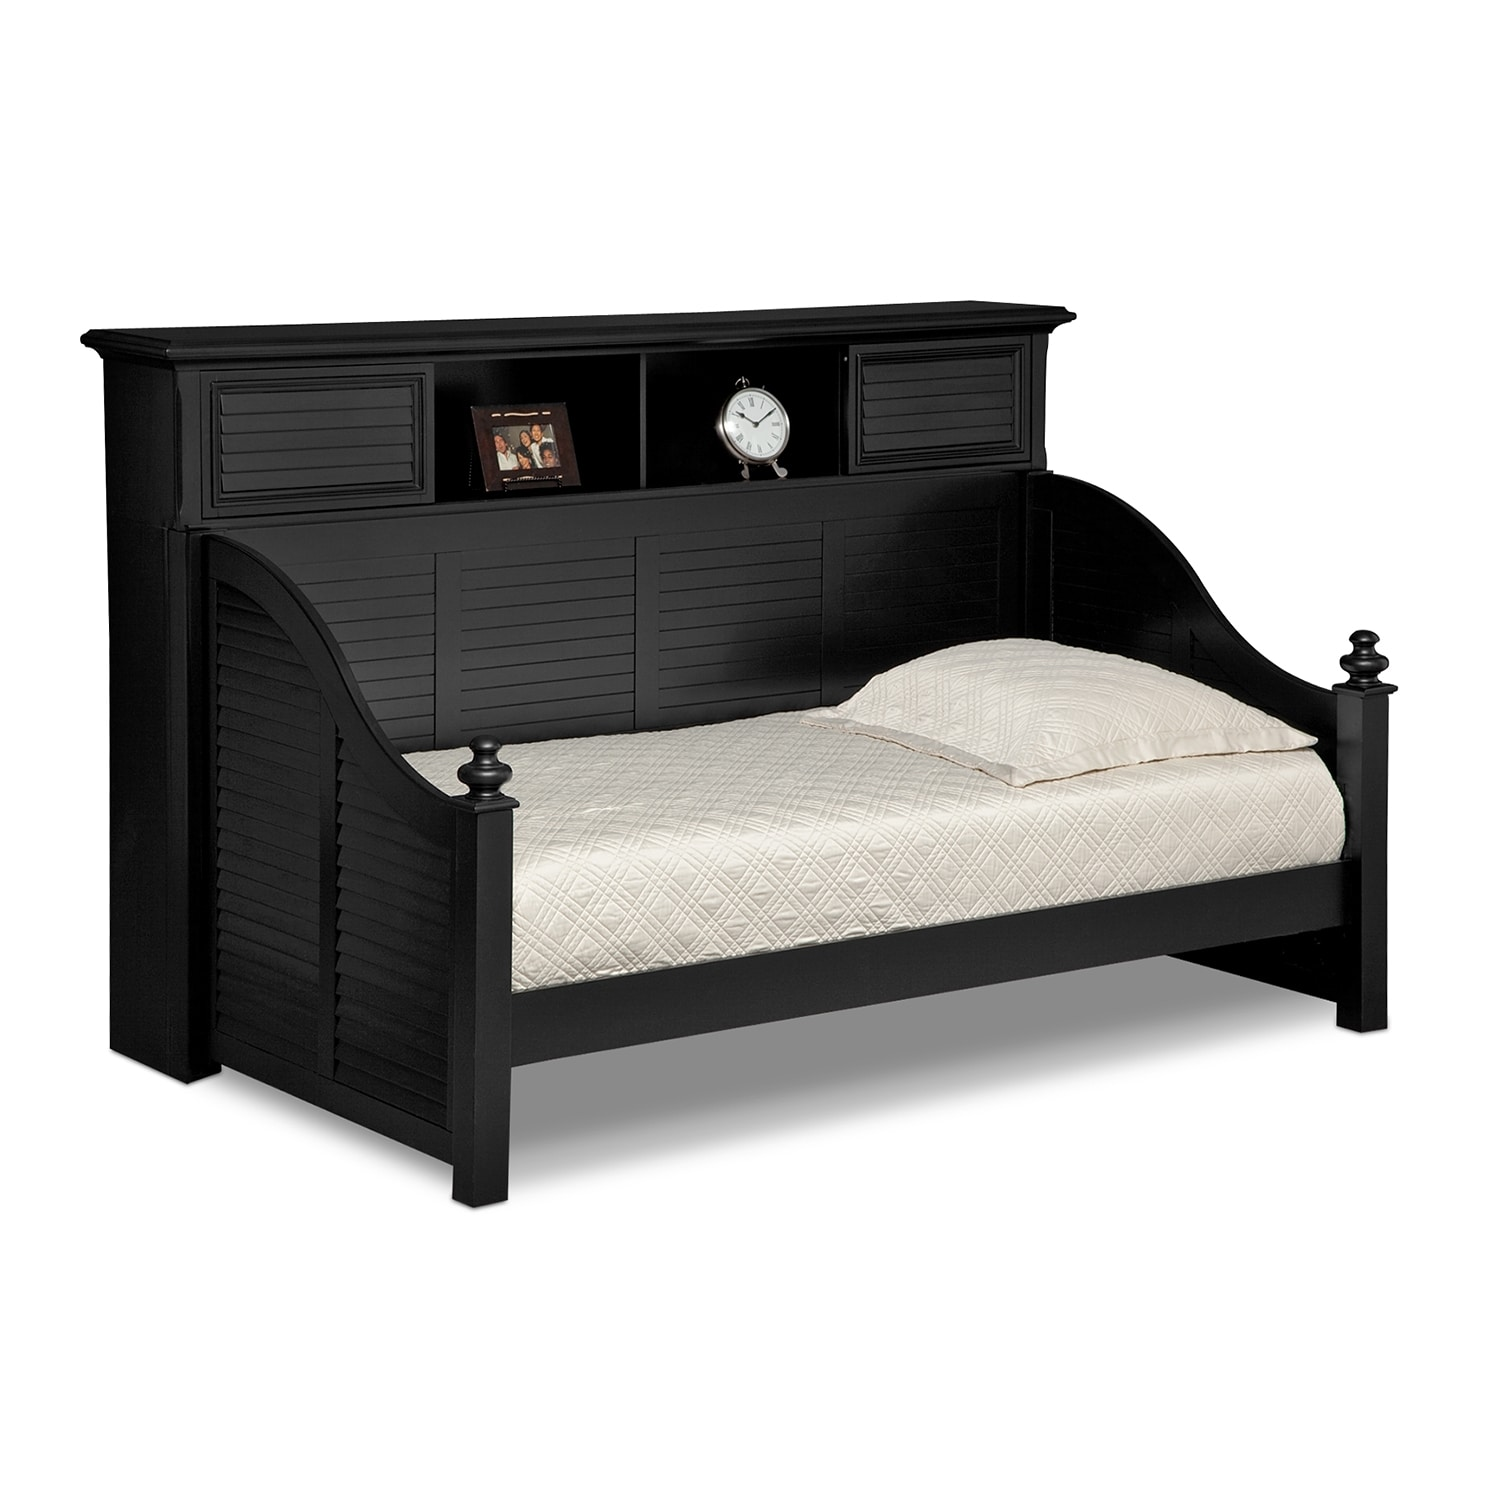 Seaside black ii bookcase daybed value city furniture